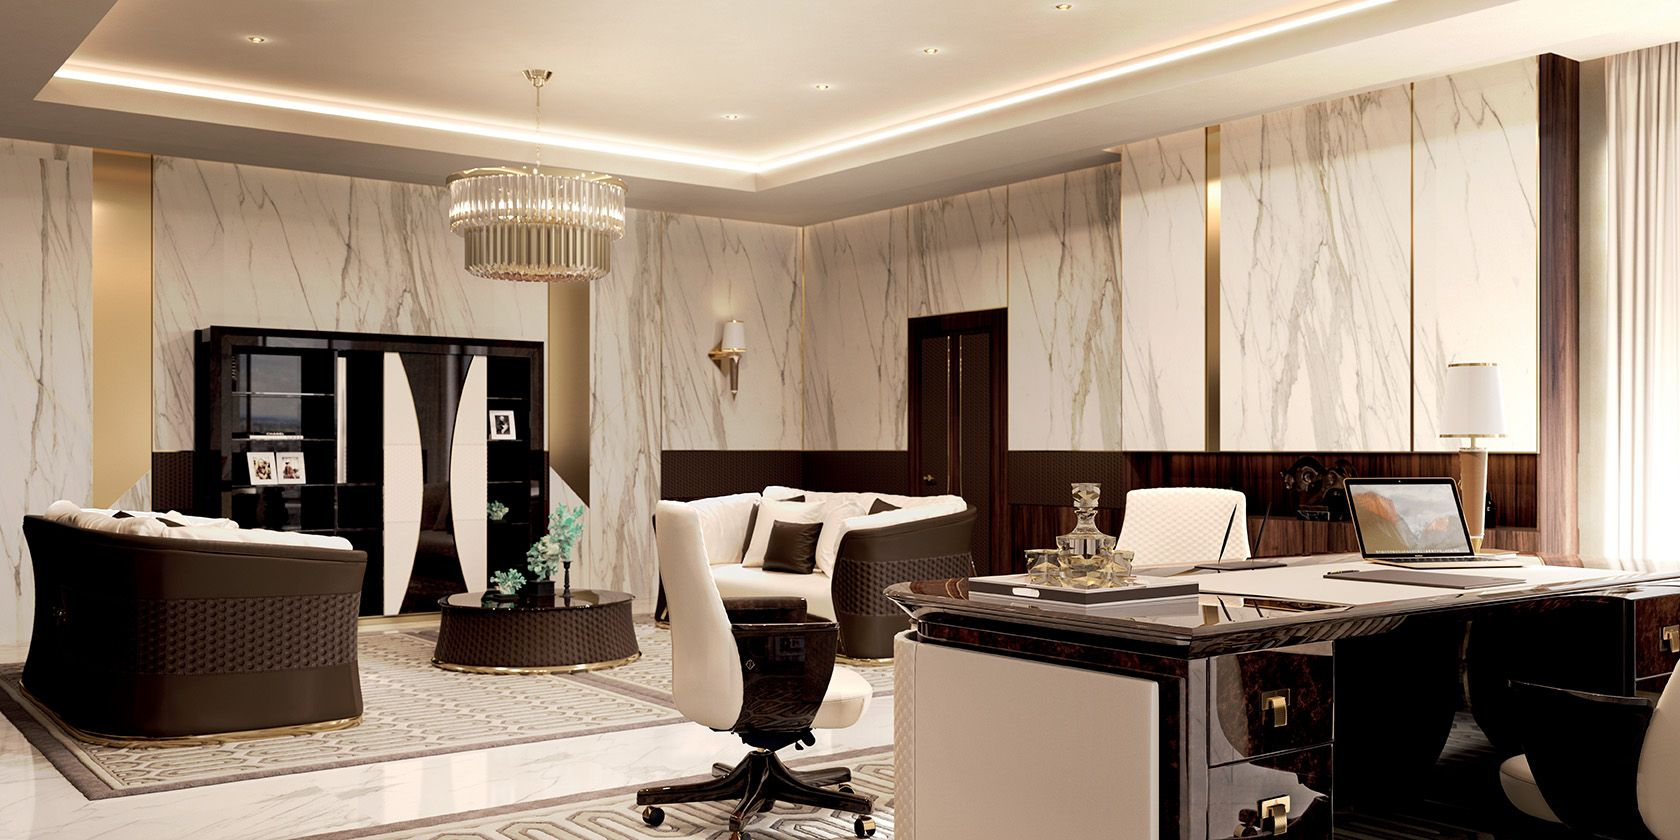 Luxury Offices Interior Design Labeled In Corporate Office